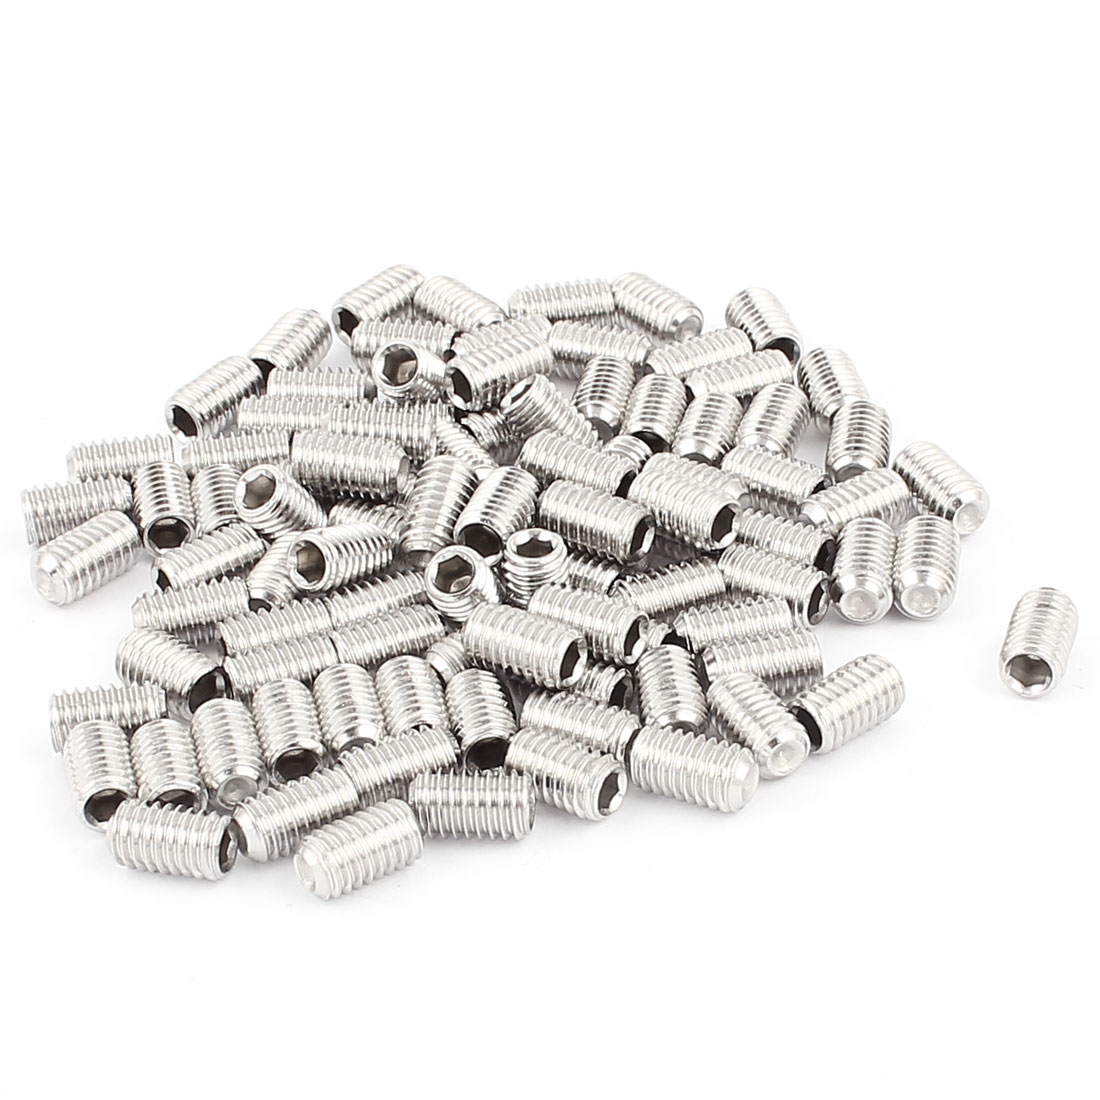 100pcs 304 Stainless Steel M6x10mm Hex Socket Flat End Set Grub Screws